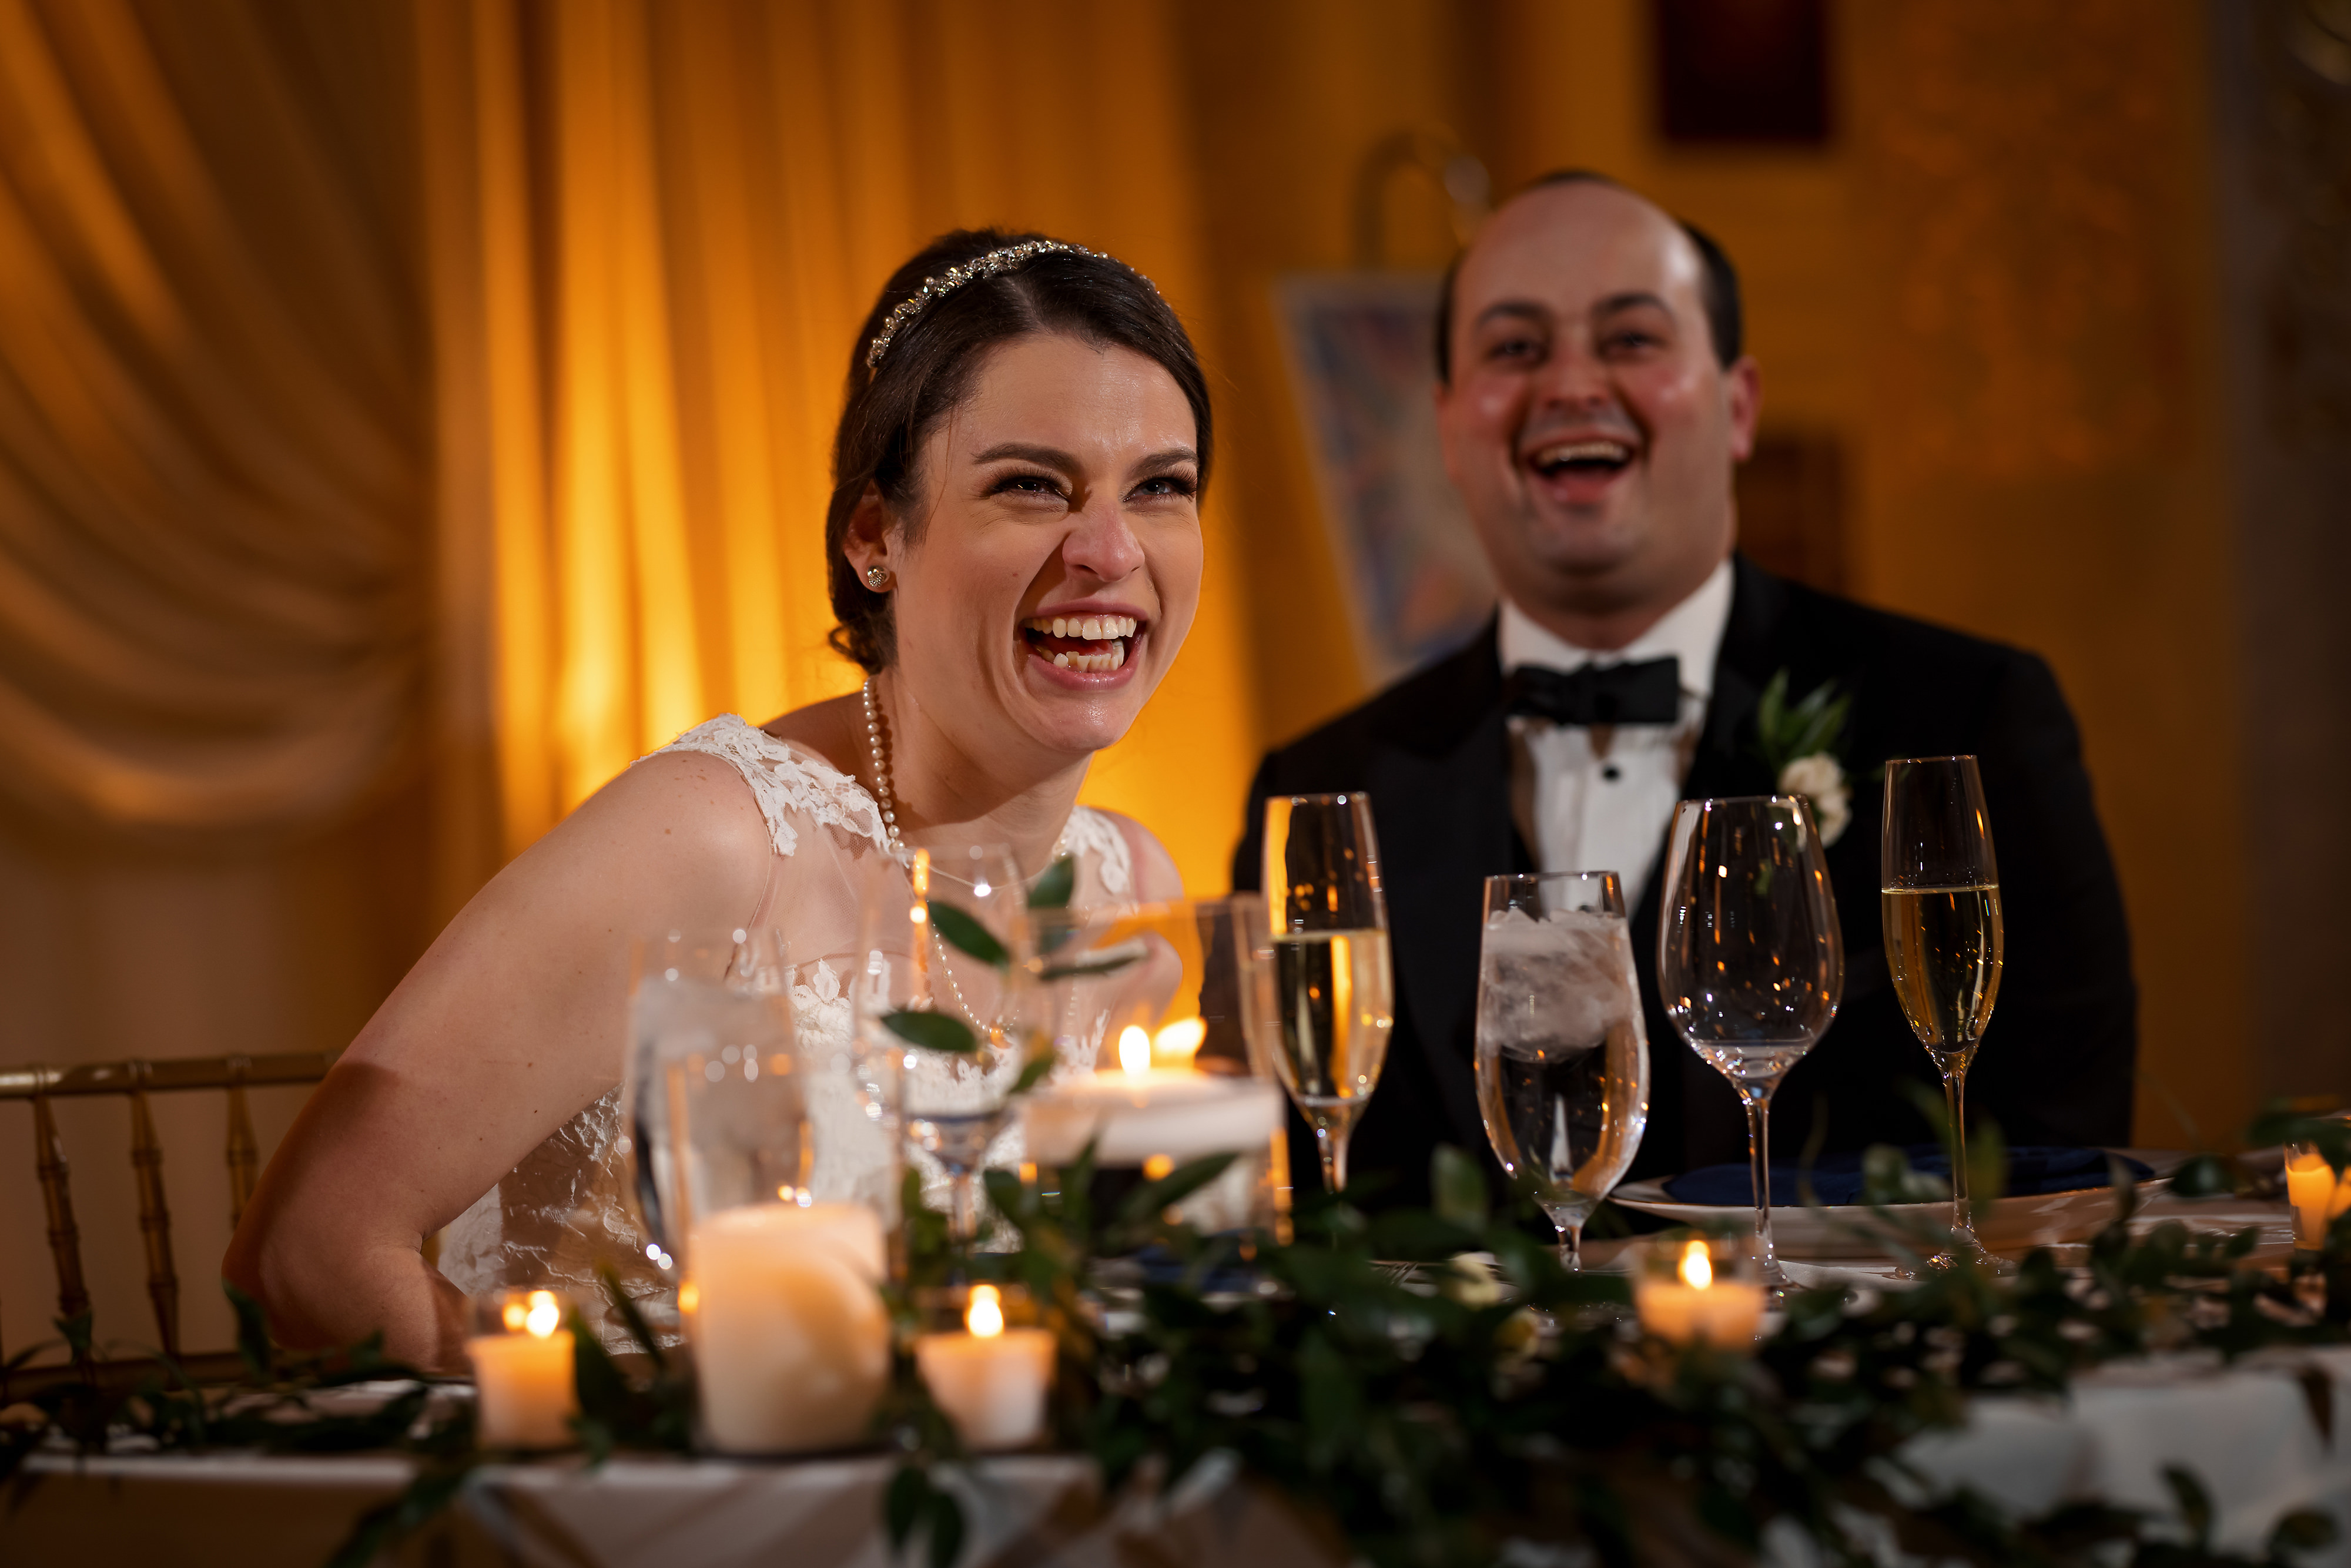 Bride and Groom laugh during toasts